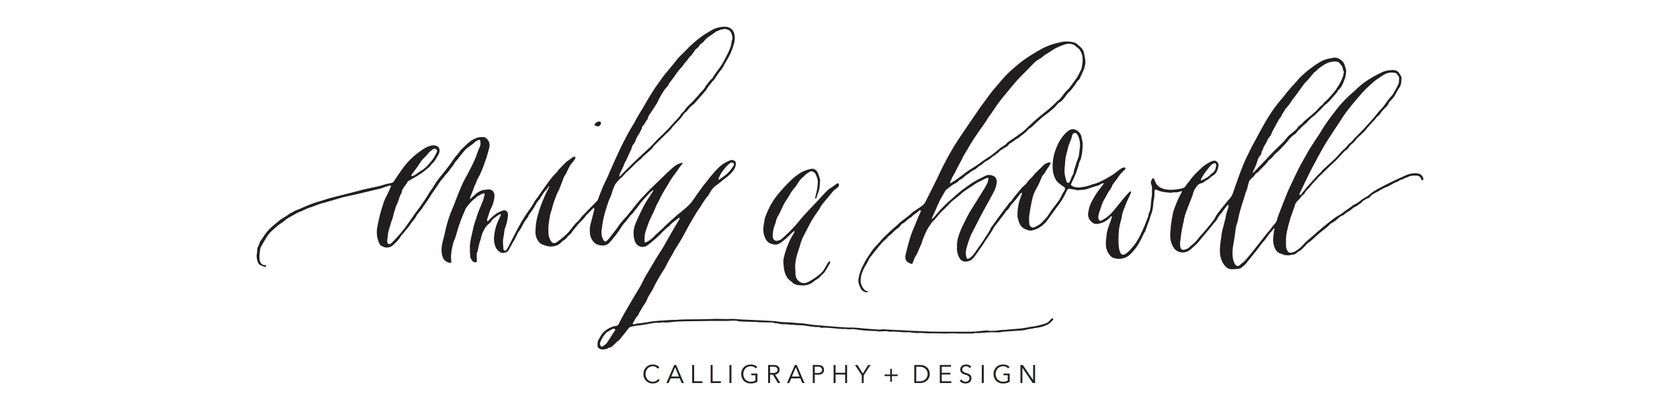 Emily A Howell Calligraphy Design By Emilyahowell On Etsy